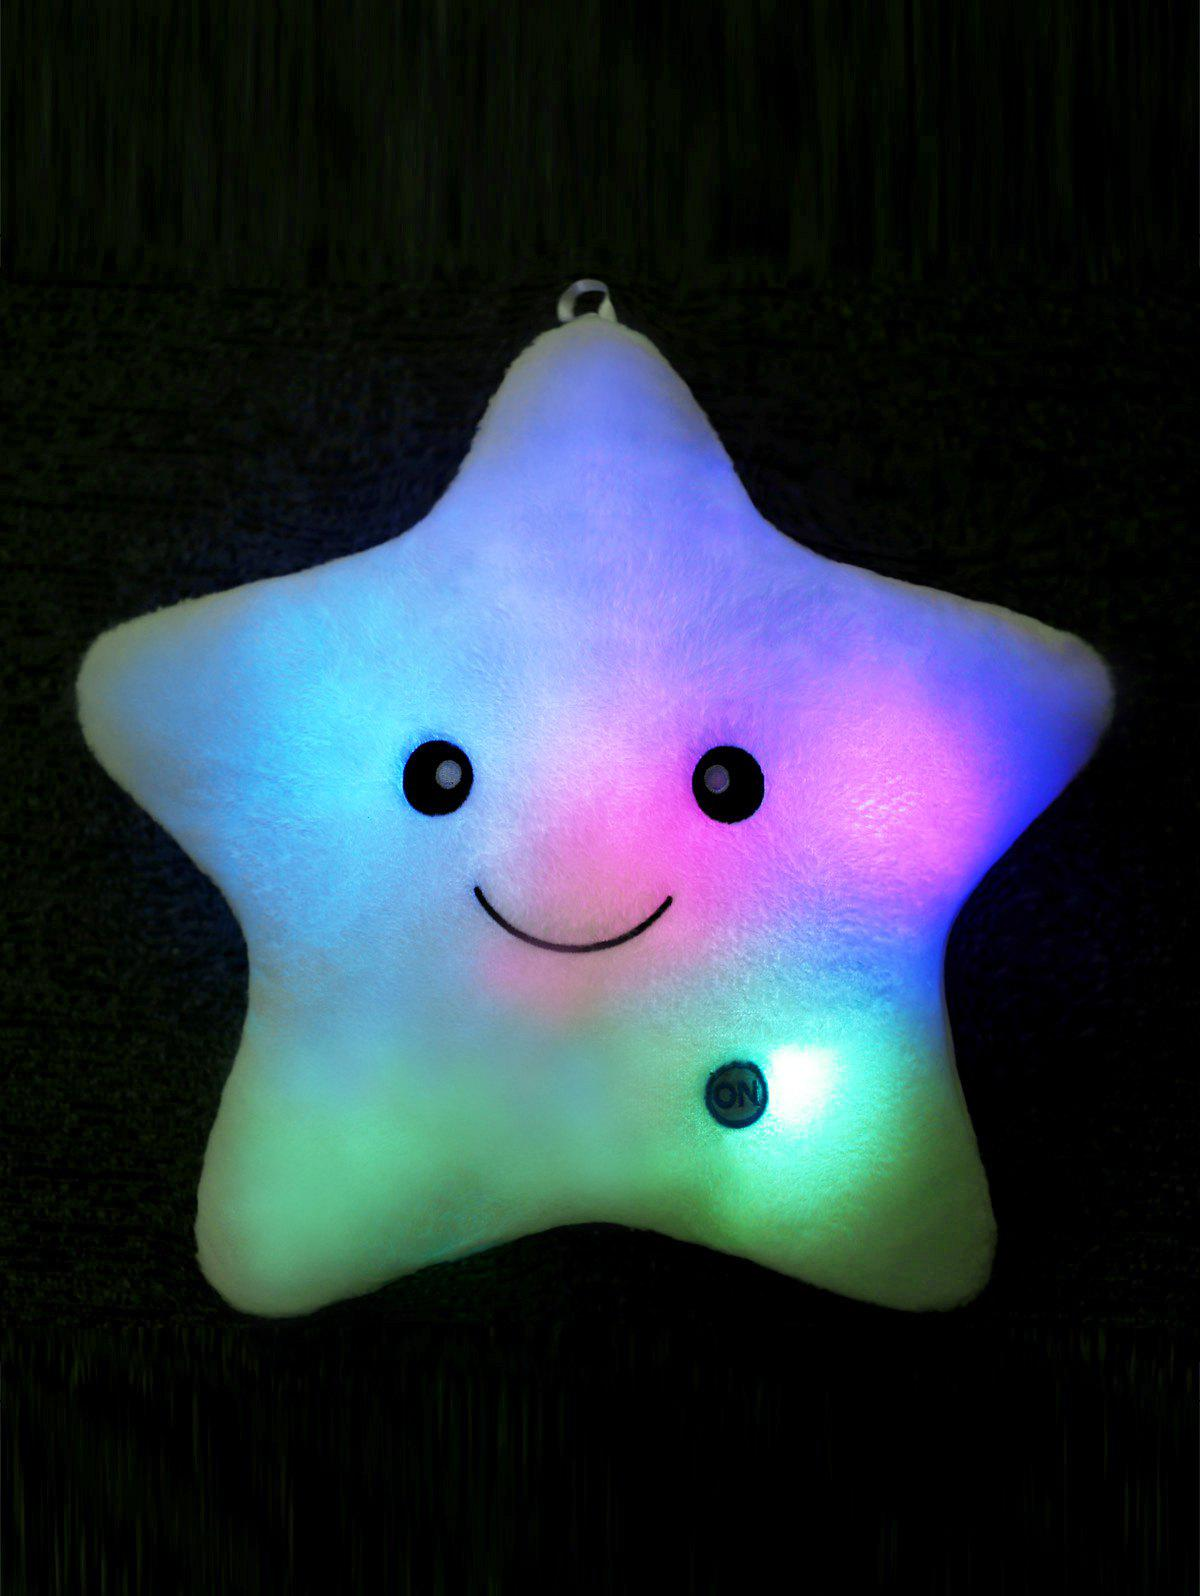 Star Shape Variable Color Luminescence PillowHOME<br><br>Color: LIGHT BLUE; Type: Decorative Pillows; Materials: Polyester / Cotton; Shape: Star; Size(CM): 35*35CM; Package Size ( L x W x H ): 30.00 x 30.00 x 4.00 cm / 11.81 x 11.81 x 1.57 inches; Weight: 0.720kg; Package Contents: 1 x Pillow;